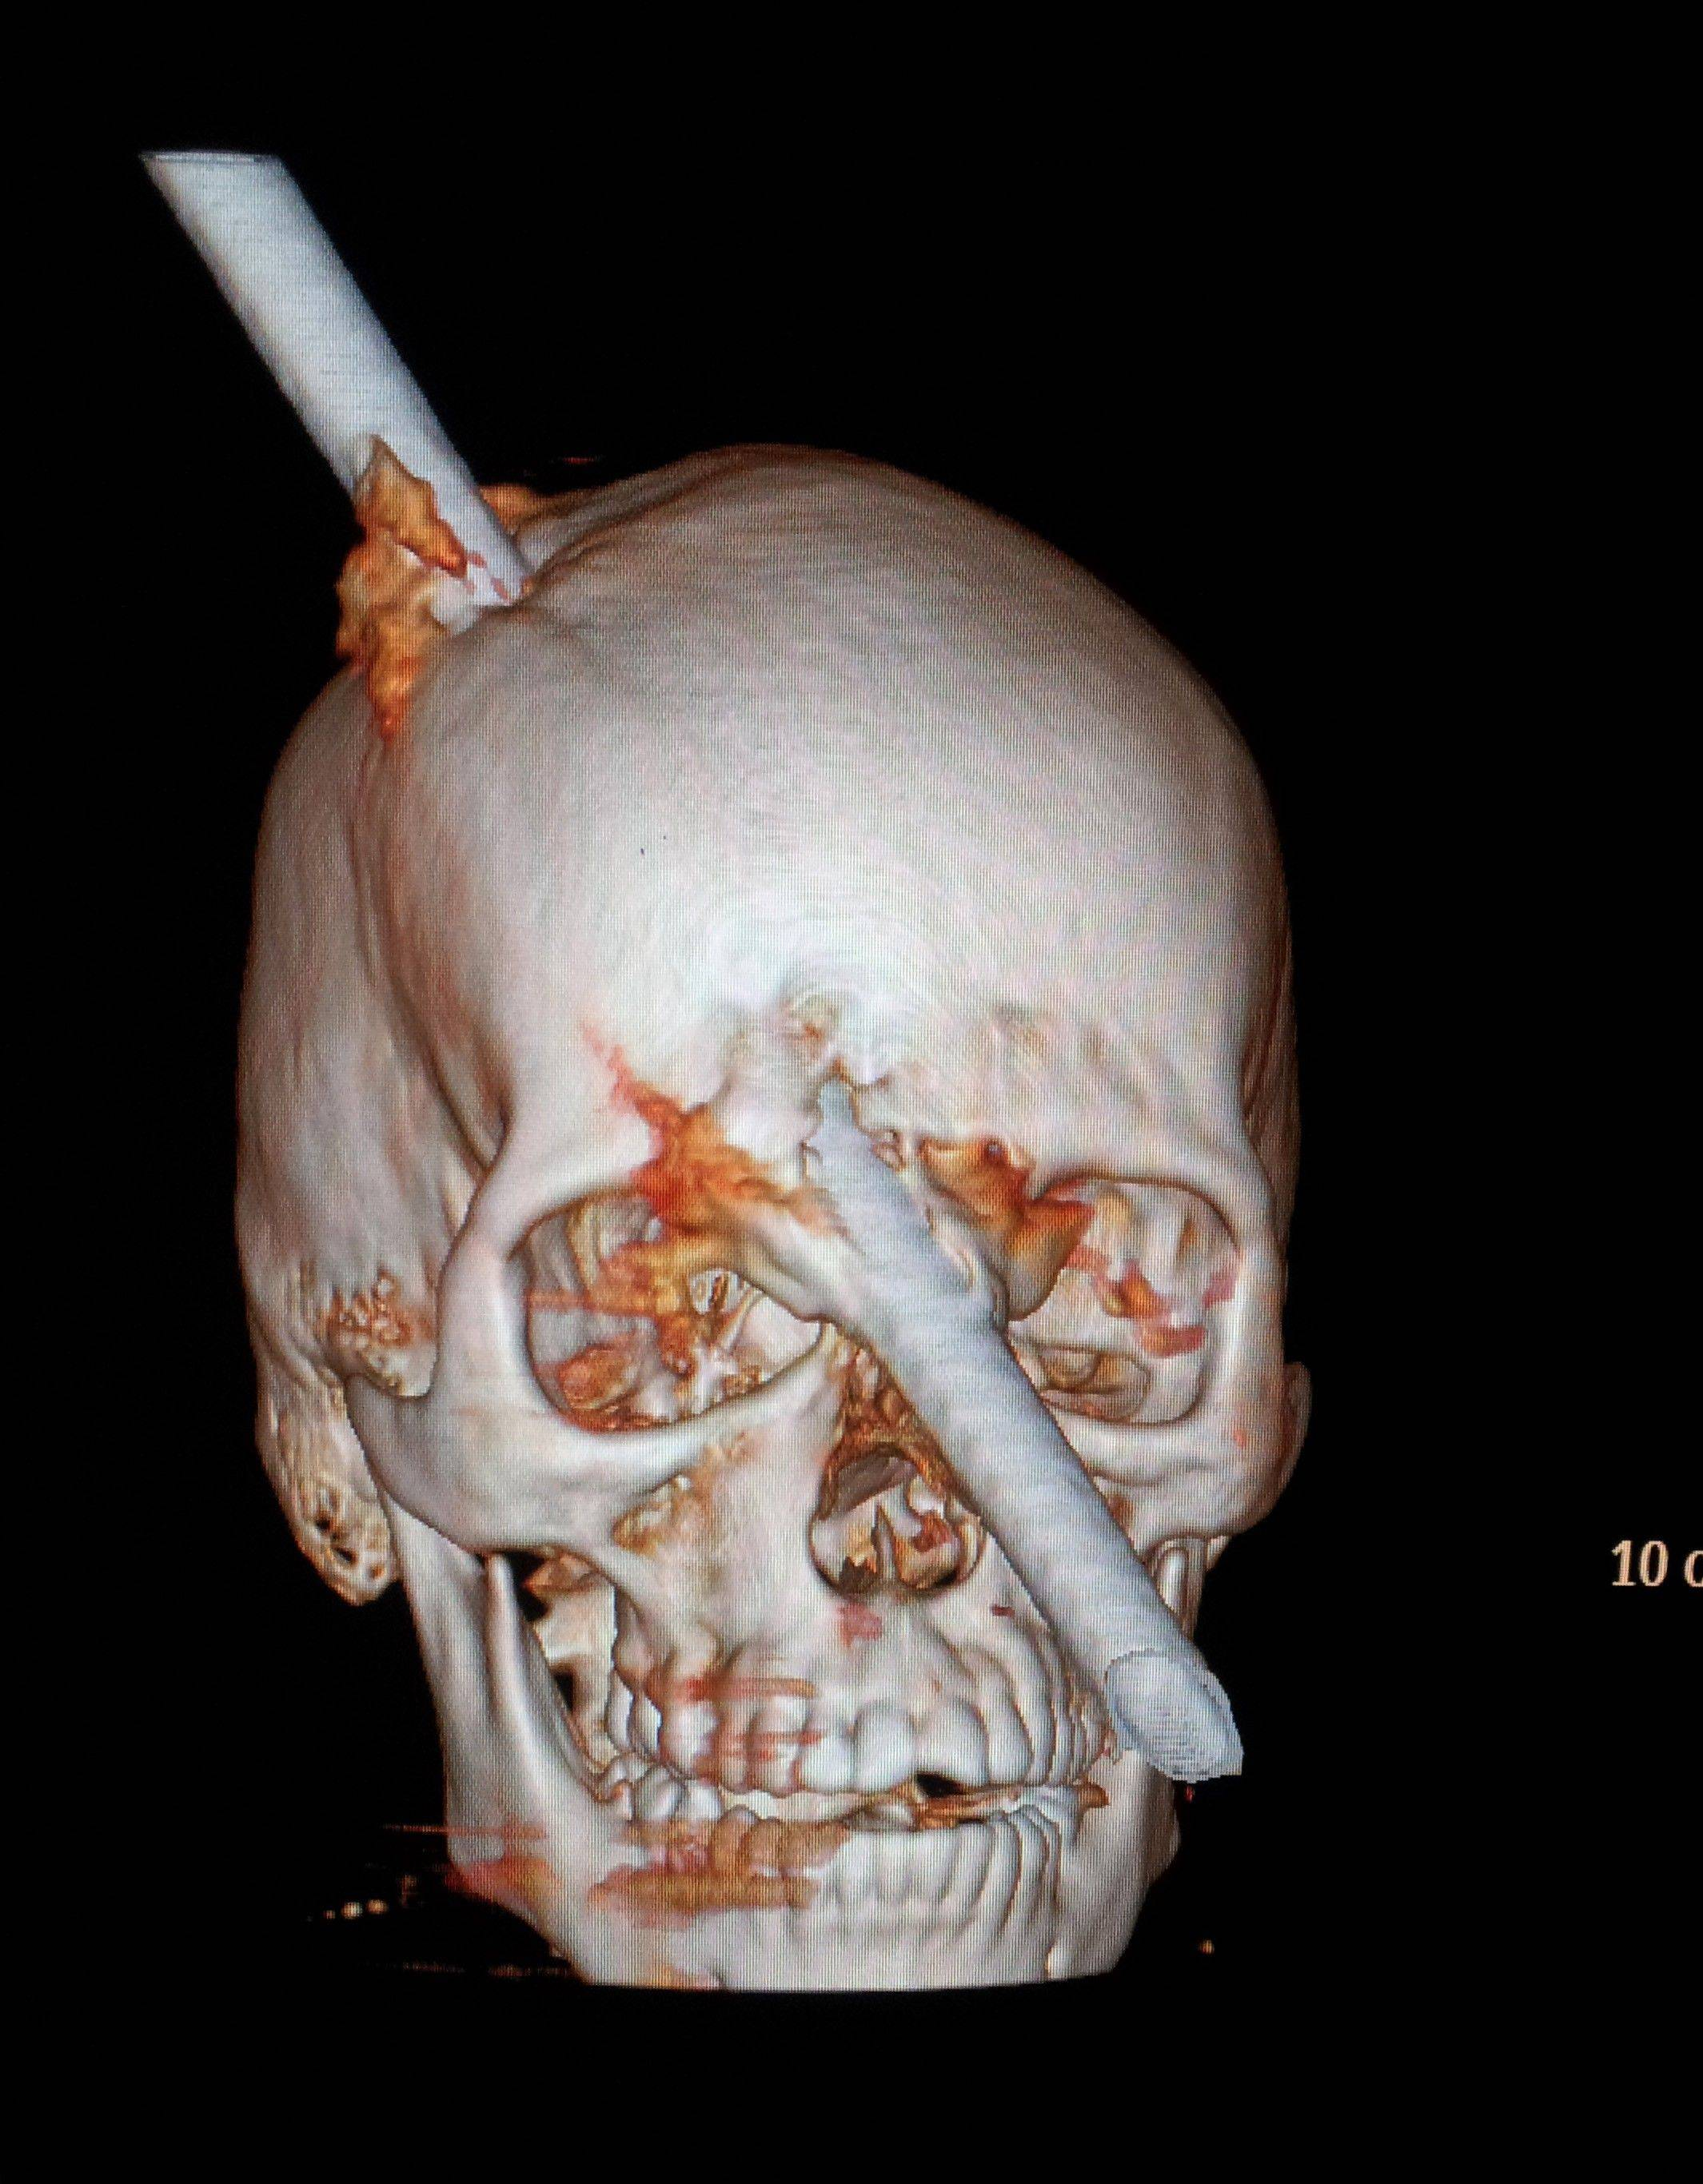 This tomography scan shows the skull of 24-year-old construction worker Eduardo Leite pierced by a metal bar. Associated Press